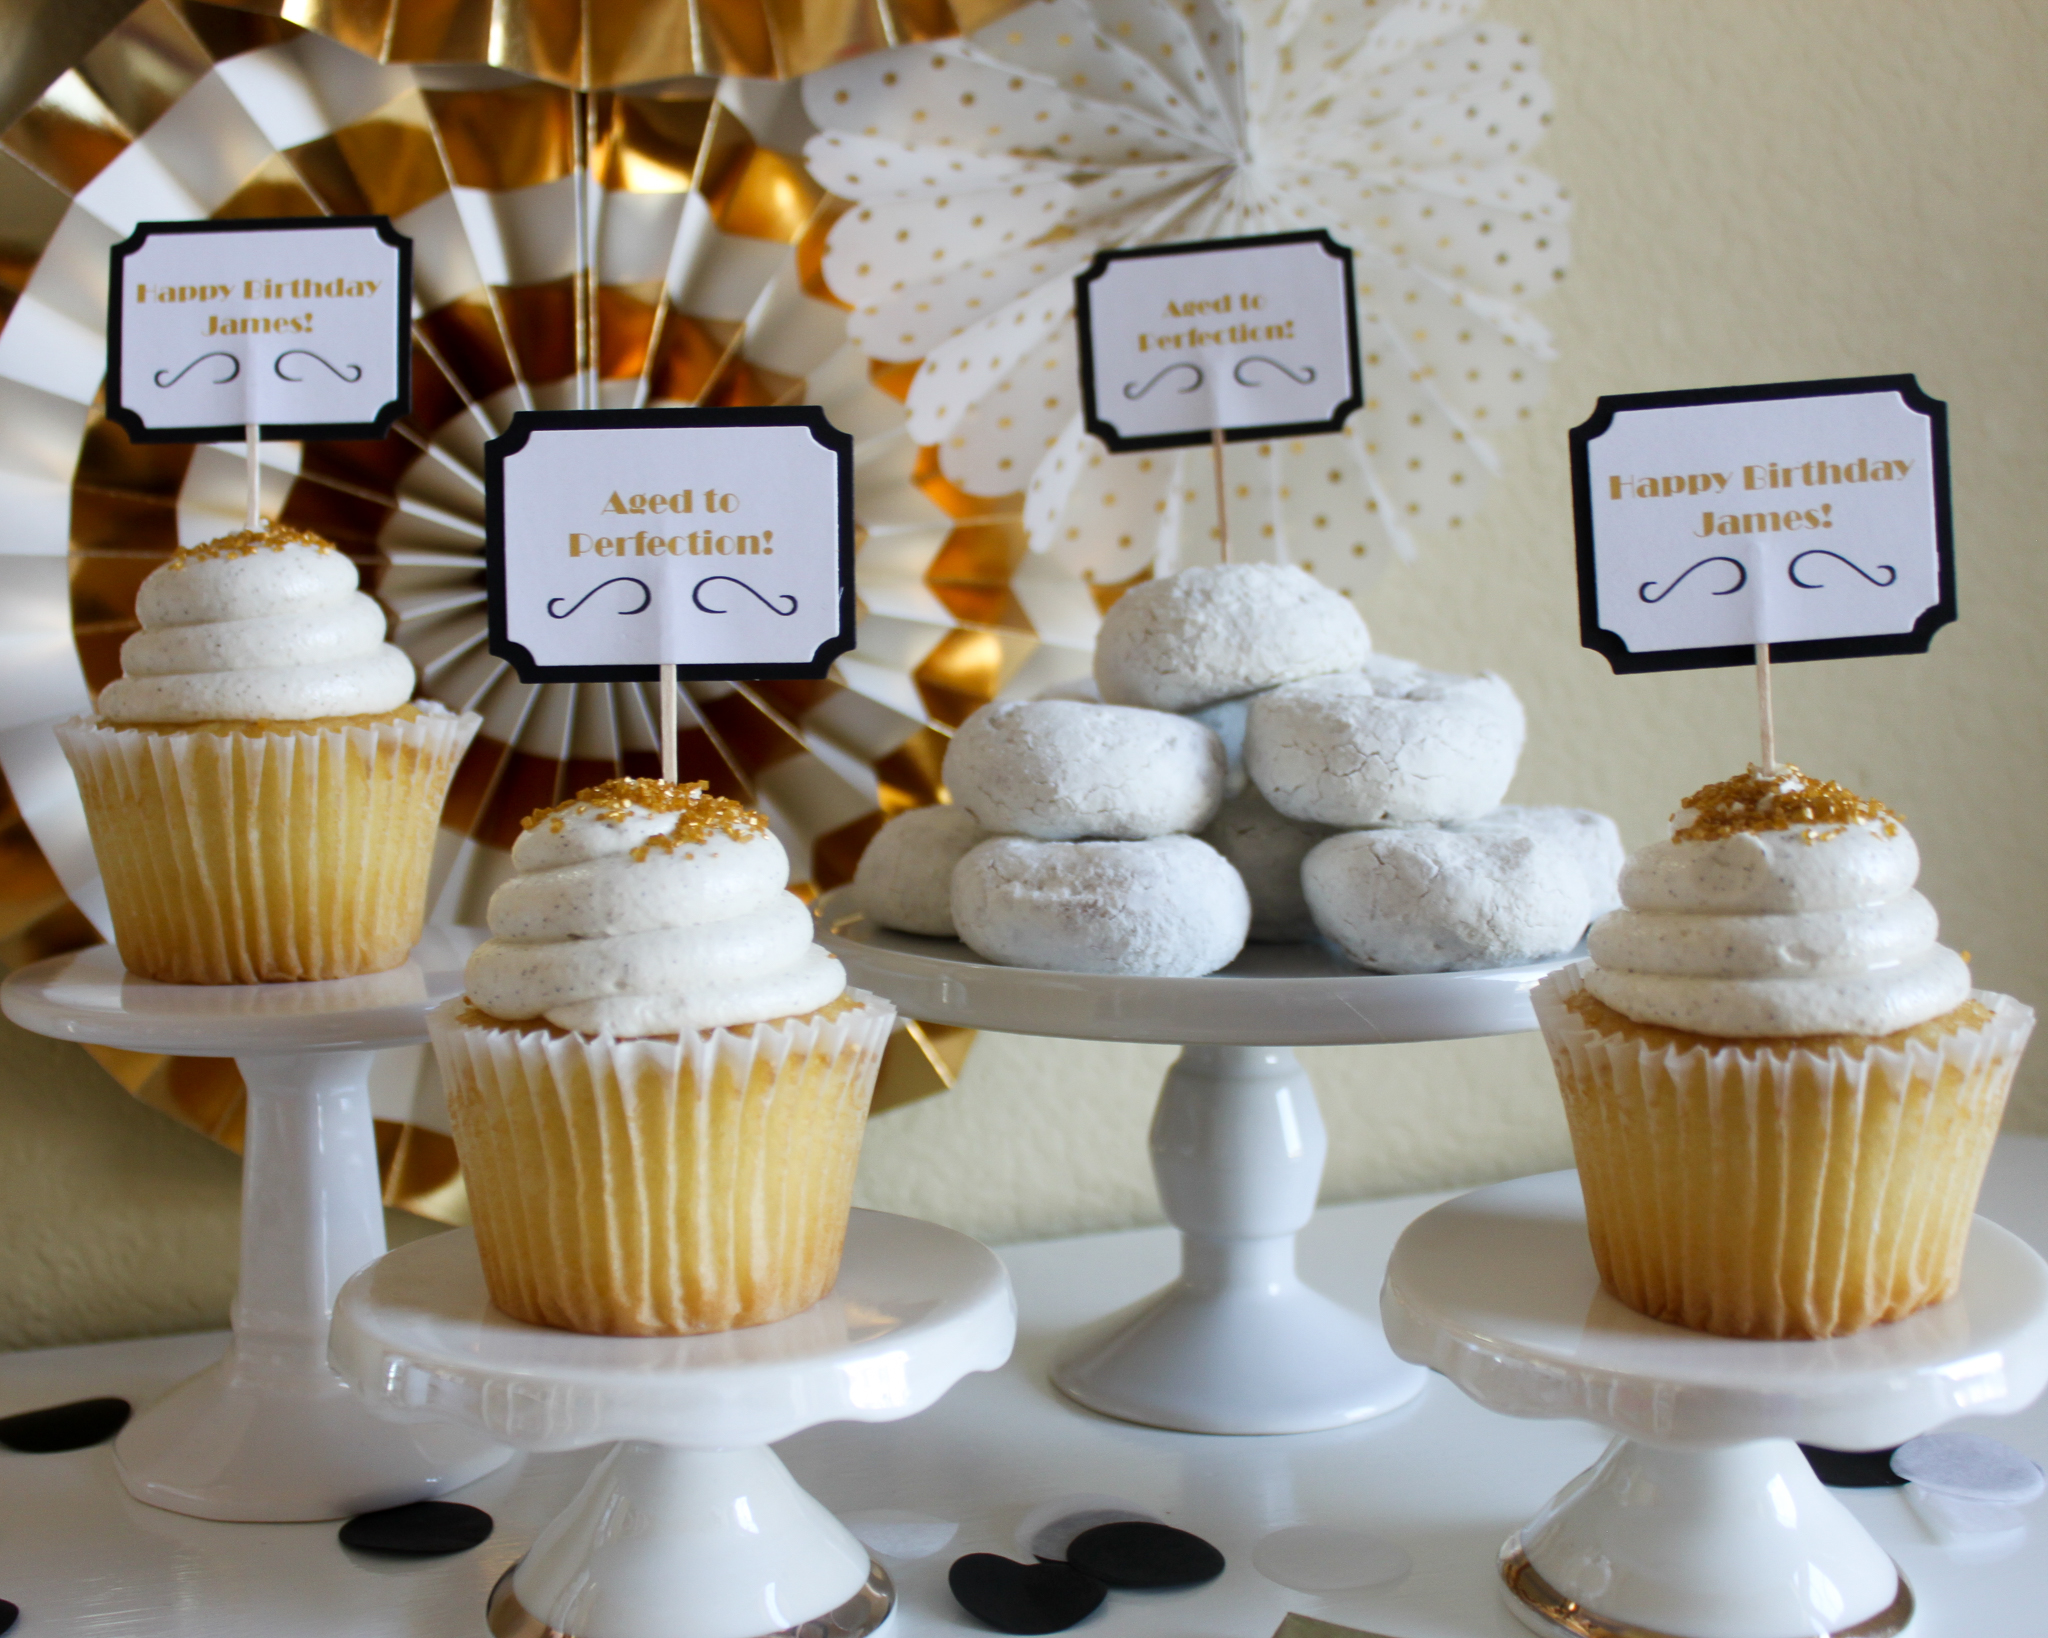 Aged To Perfection Cupcake Toppers - OhSoFancyParty